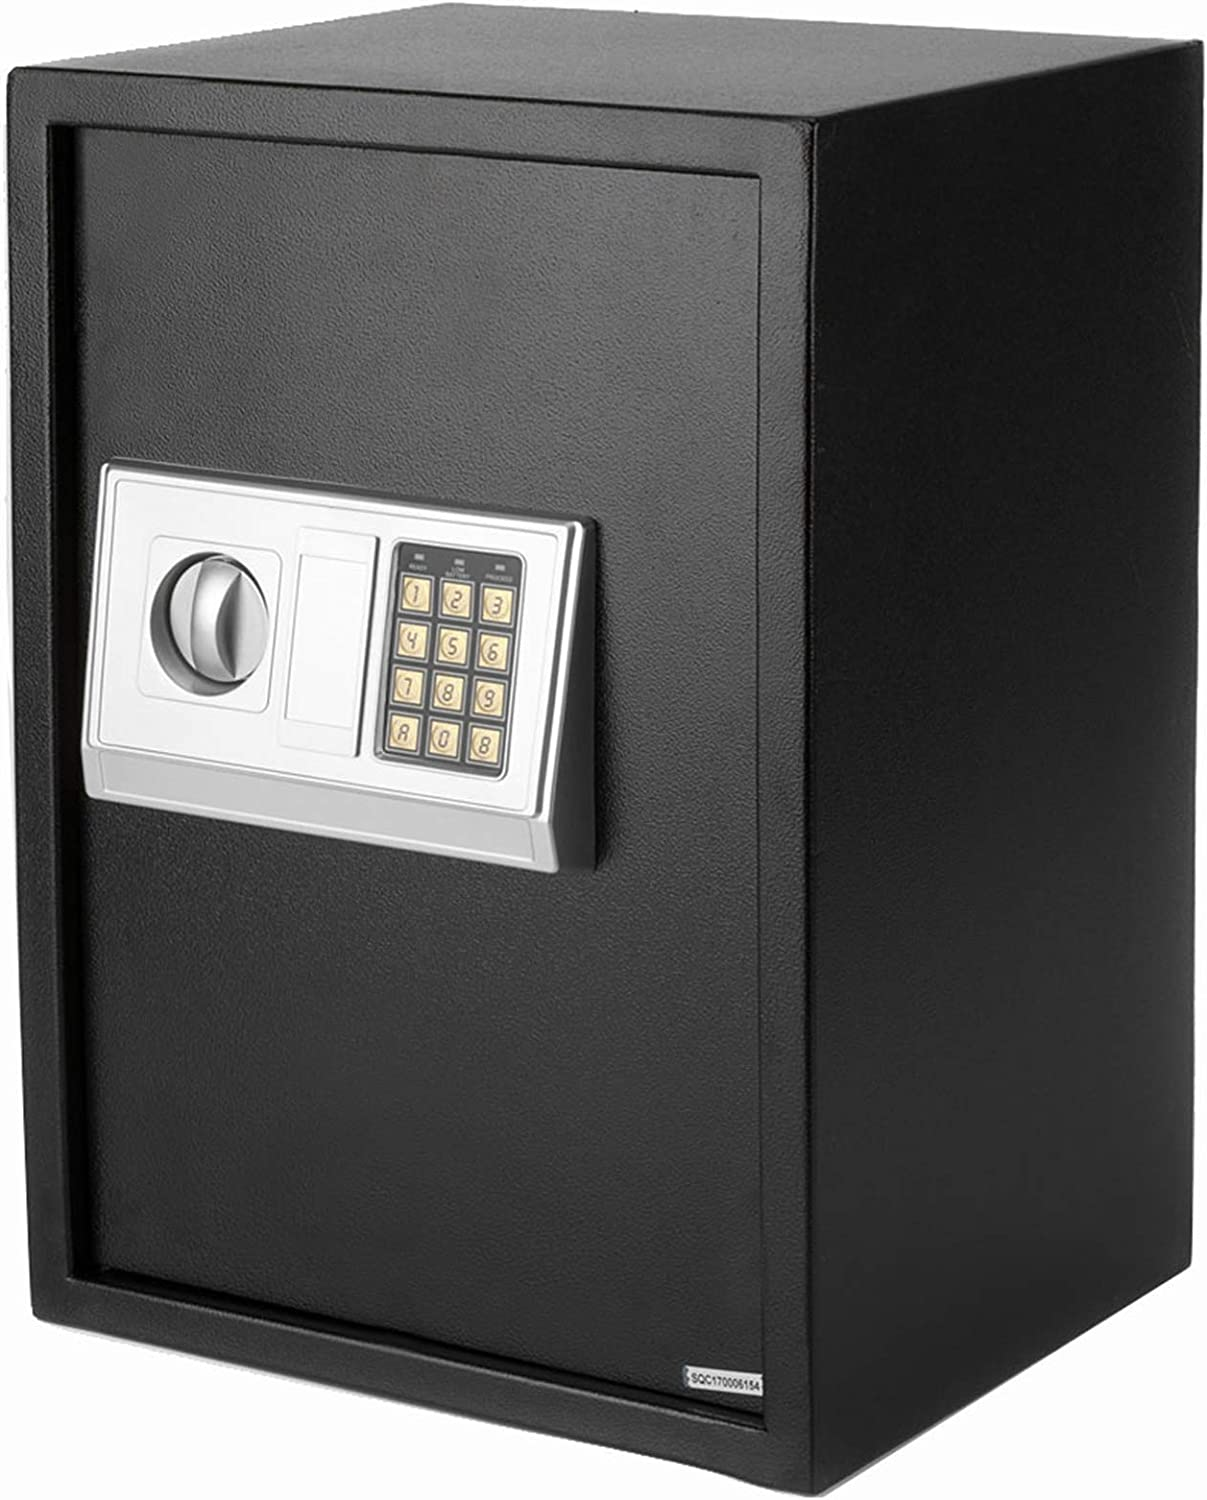 WiCCI gt6-ZJ Security Home Business Digit Keypad Max 61% OFF Lock Electronic Japan's largest assortment